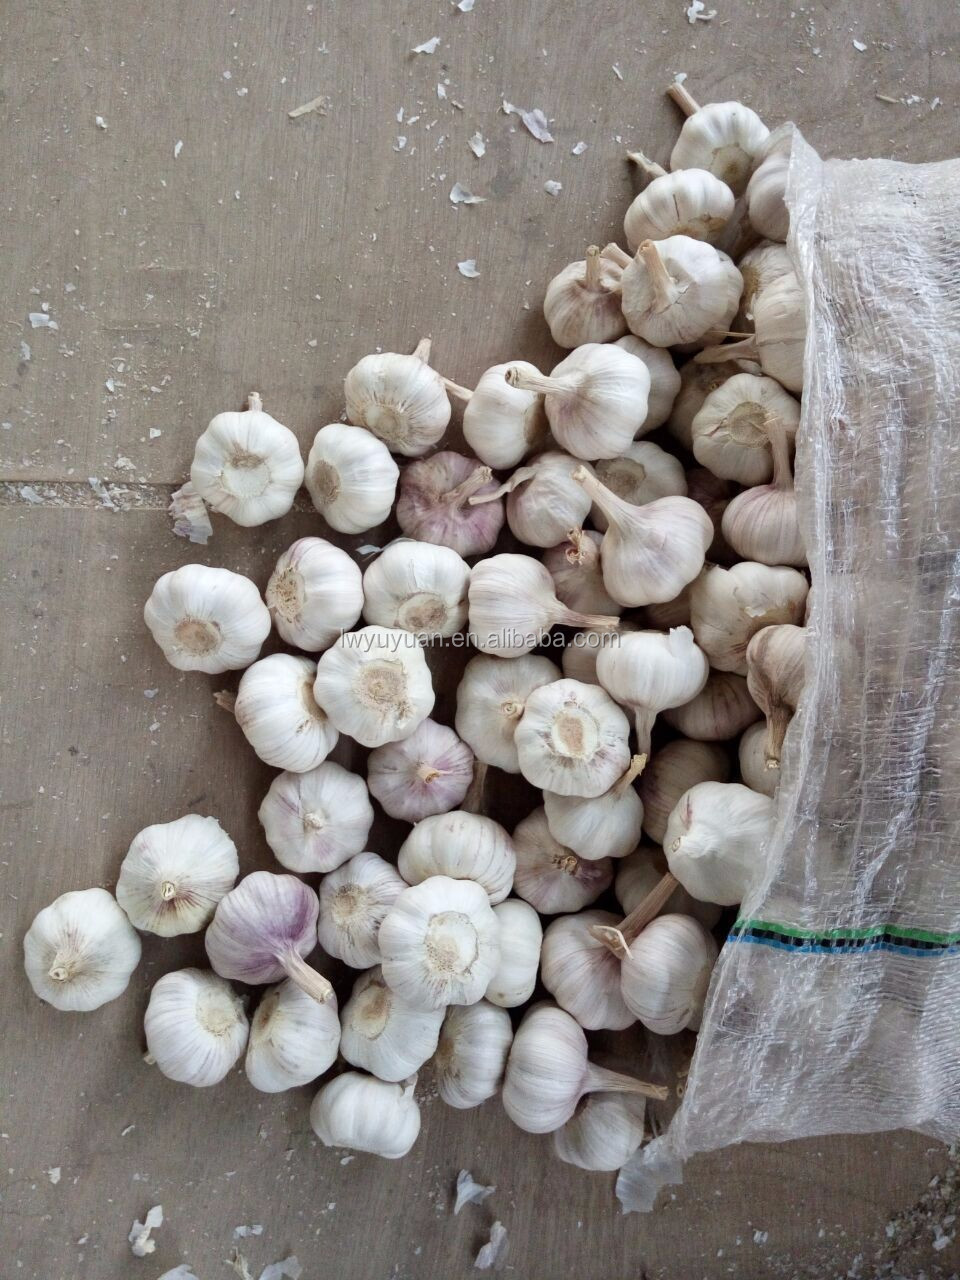 YUYUAN brand hot sail fresh garlic china garlic price 2016